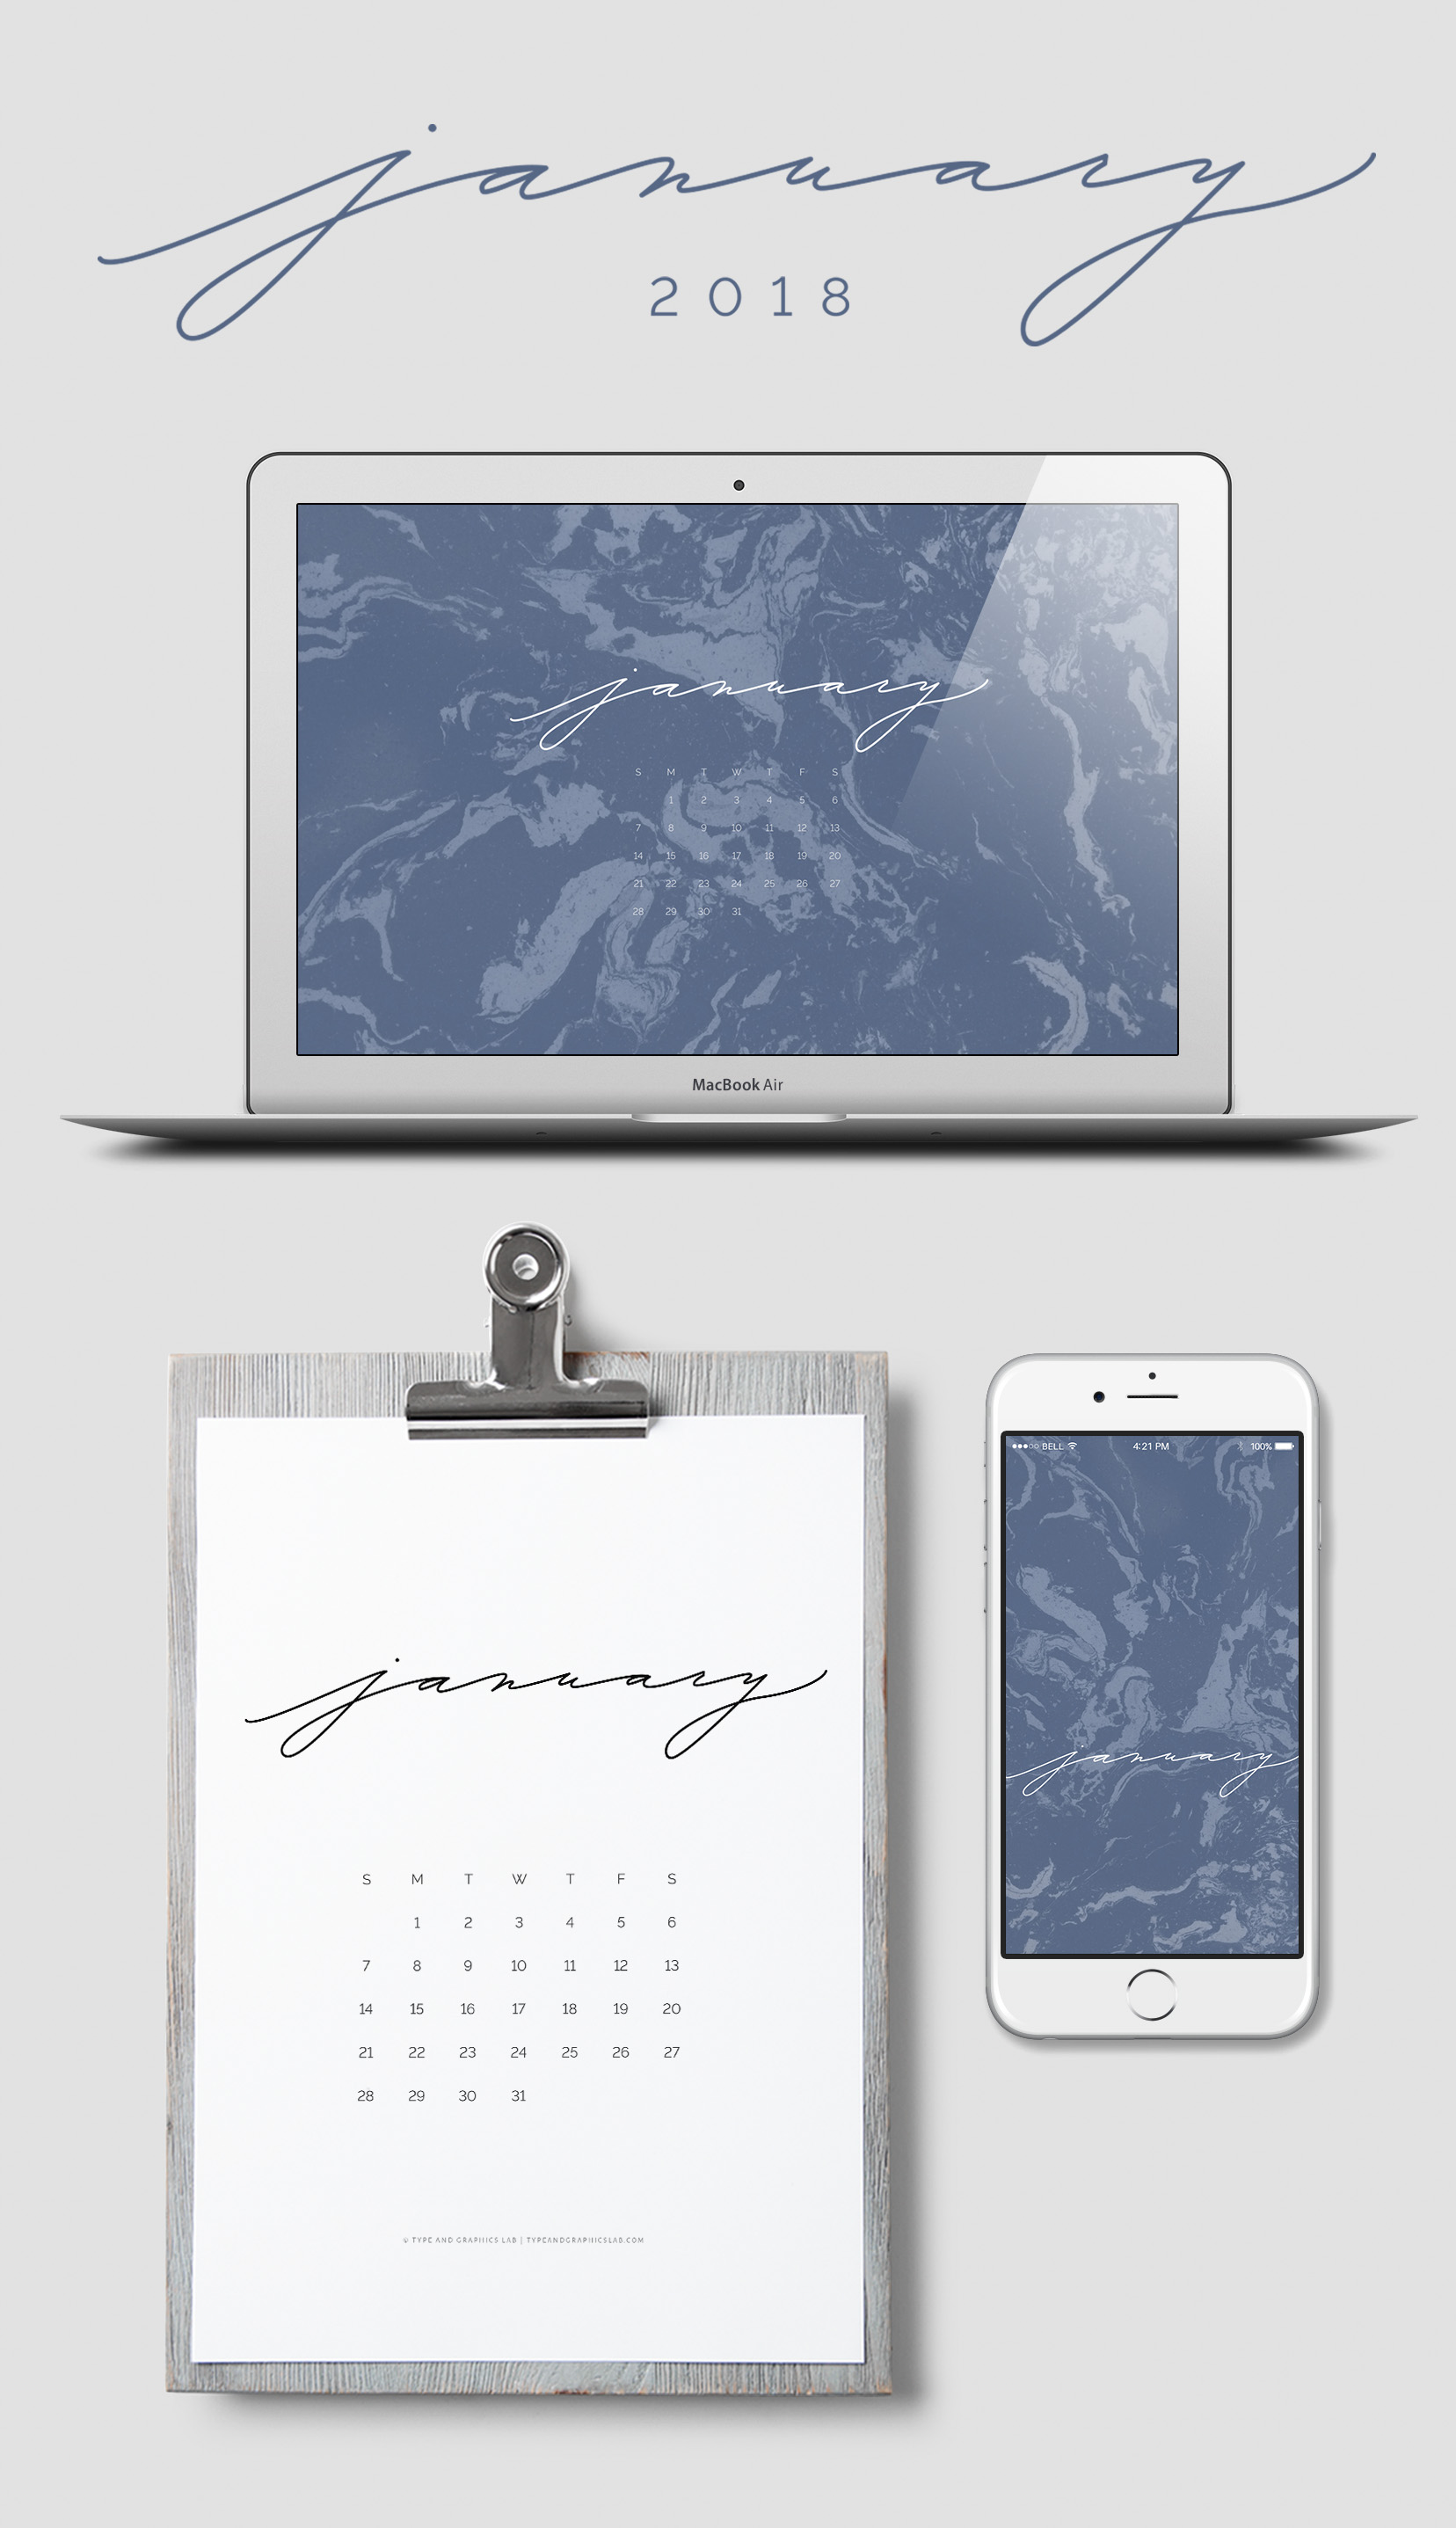 Download free desktop, mobile, and printable calendar for January 2018 |©typeandgraphicslab.com | For personal use only